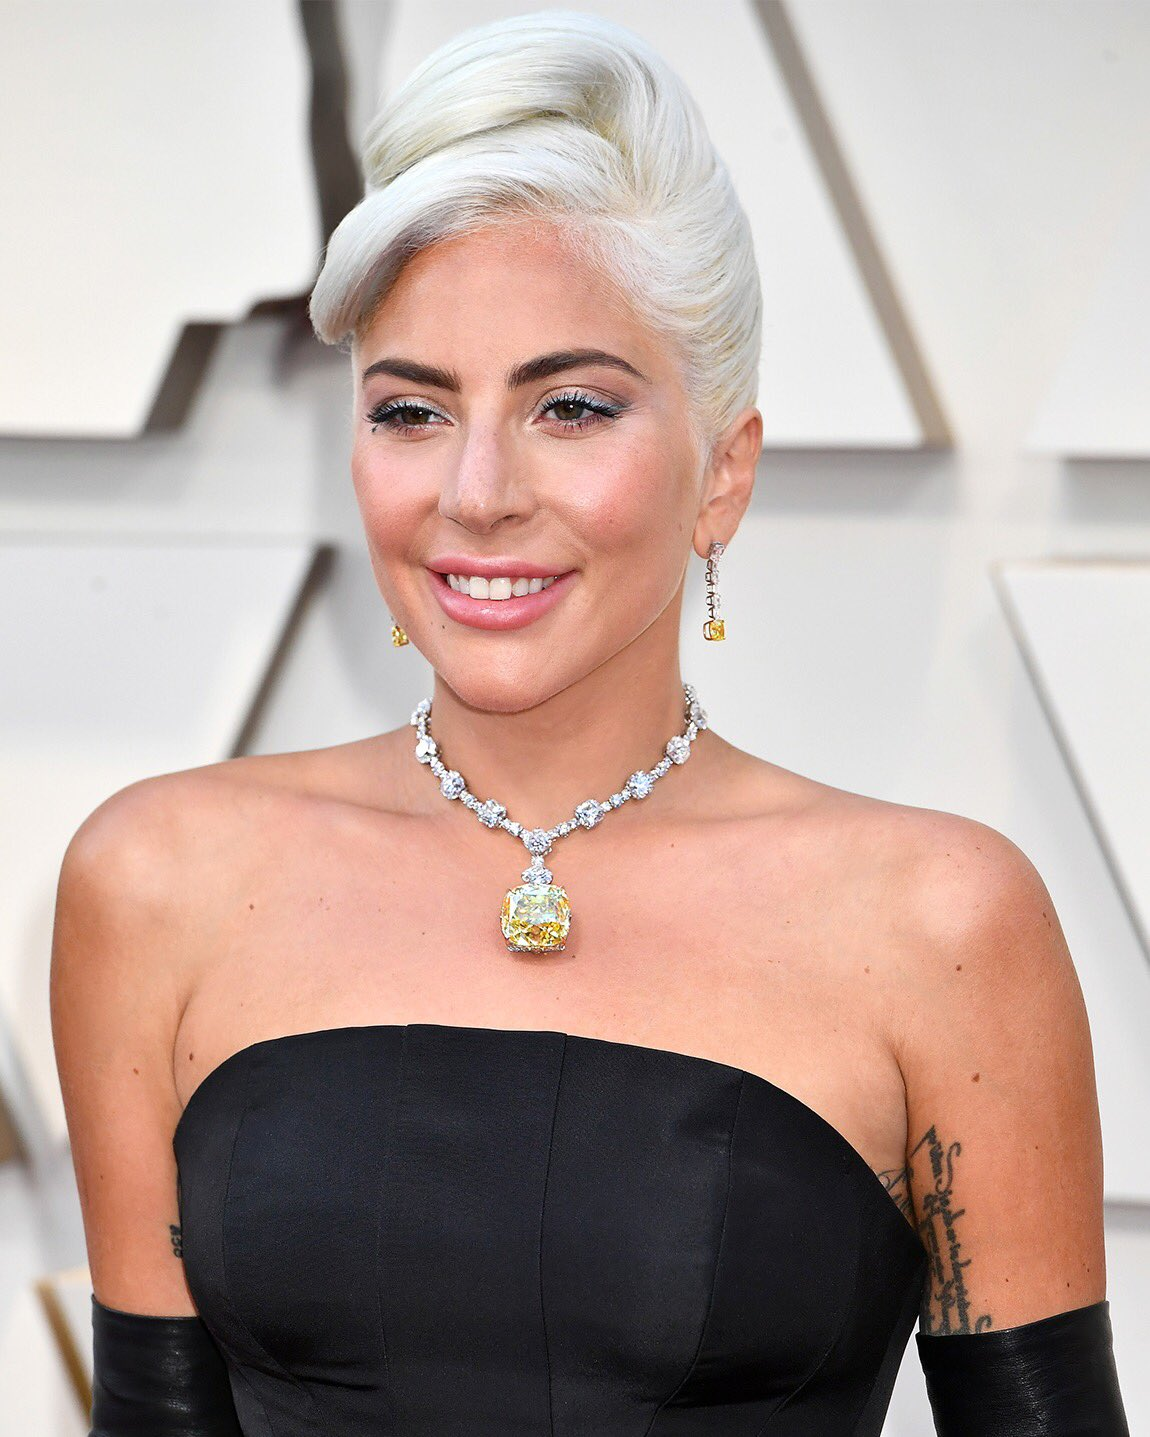 fc9e3b9a6 LADY GAGA STUNS THE CROWD IN TIFFANY & McQUEEN PH: GETTY IMAGES